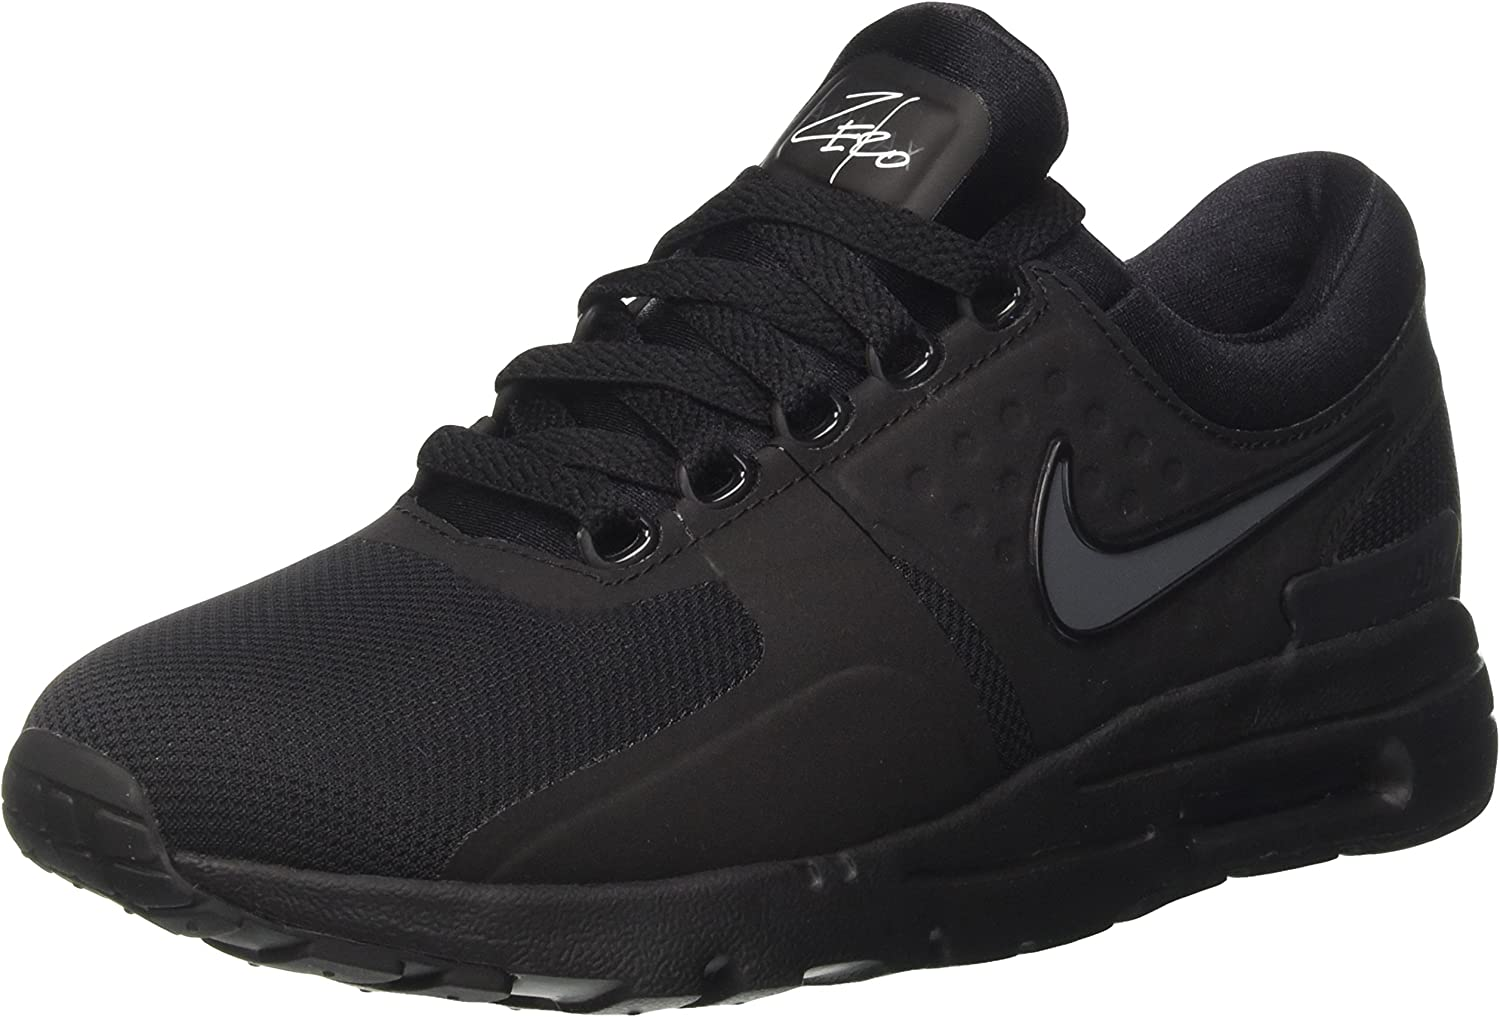 Nike Womens Air Max Zero Black Black Dark Grey White Running Shoe 6.5 Women US